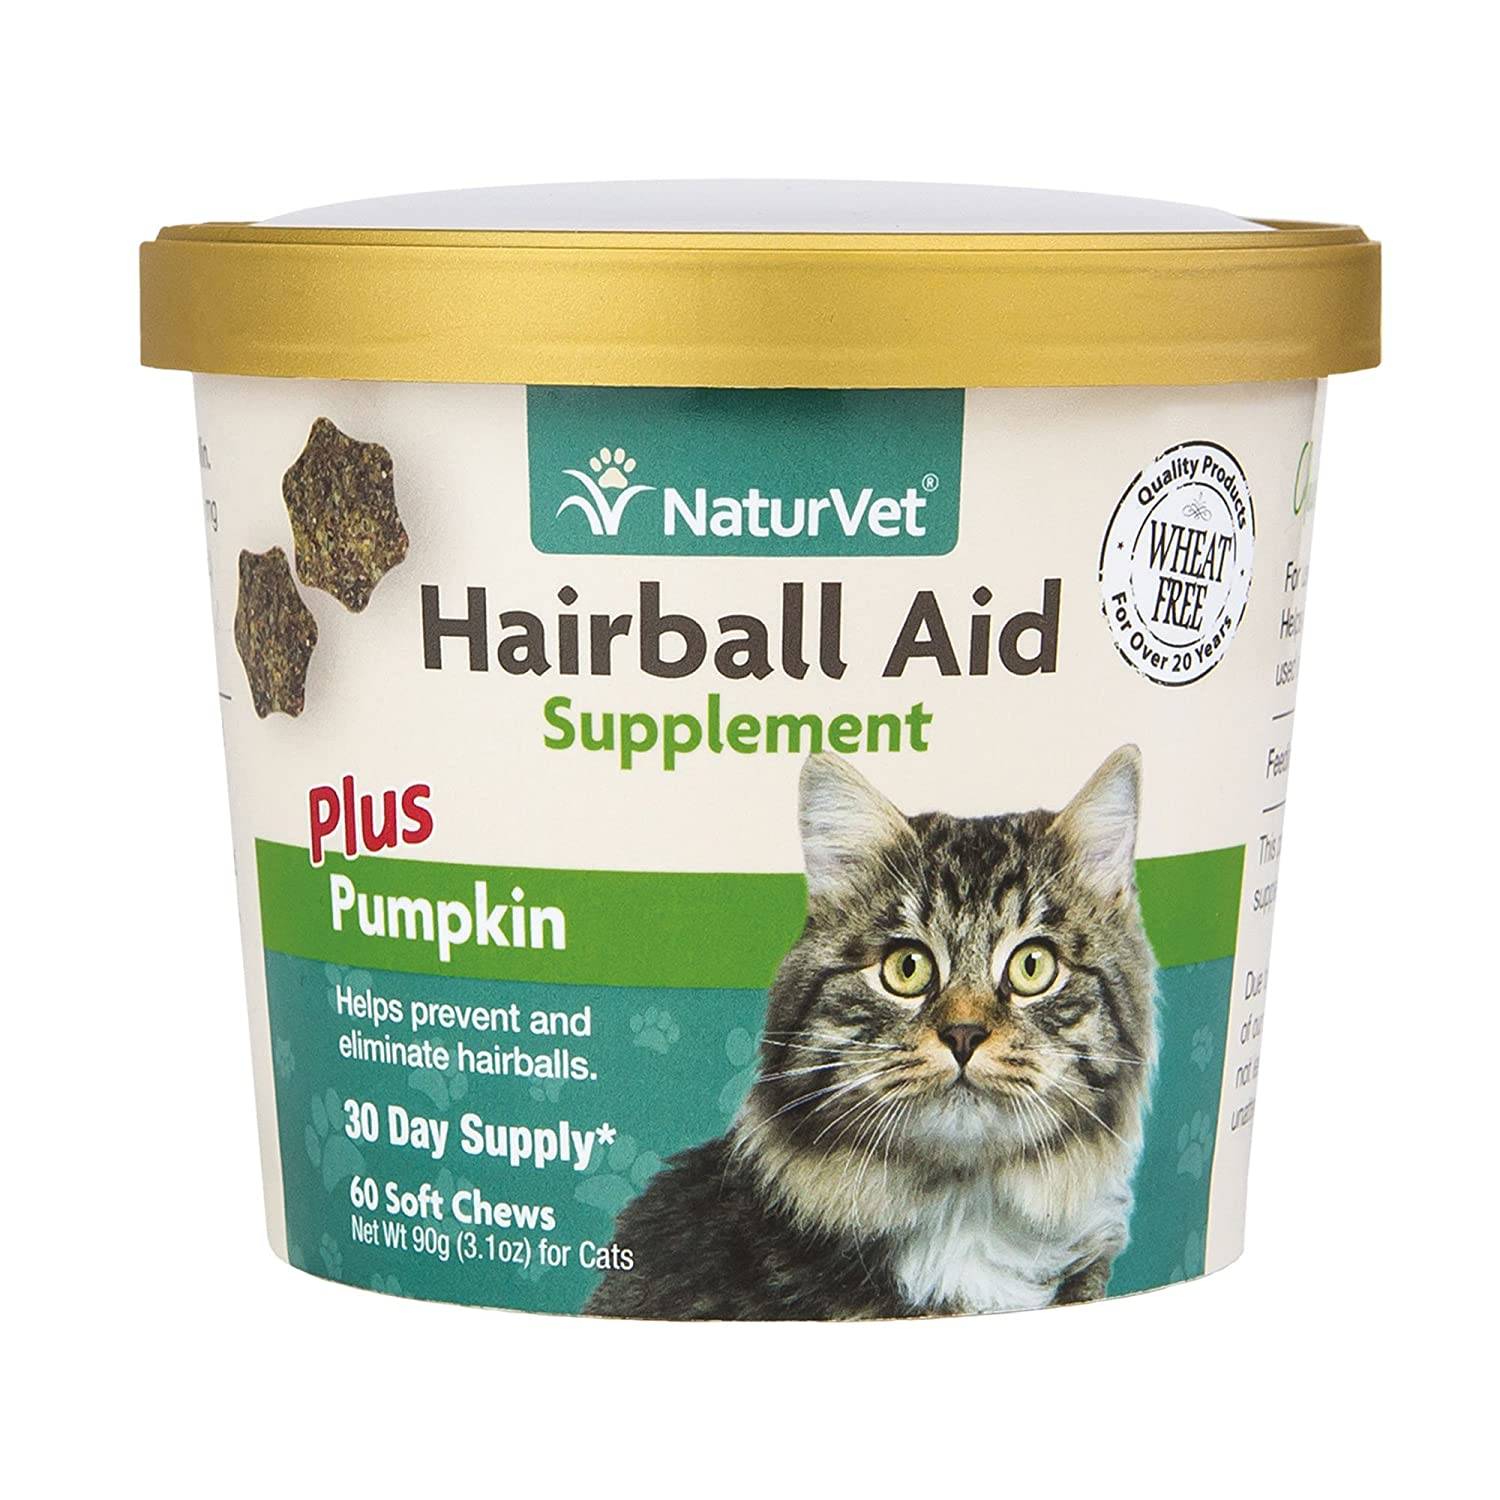 NaturVet Hairball Aid Plus Pumpkin for Cats, 60 ct Soft Chews, Made in USA AniPet Animal Supply 79903646